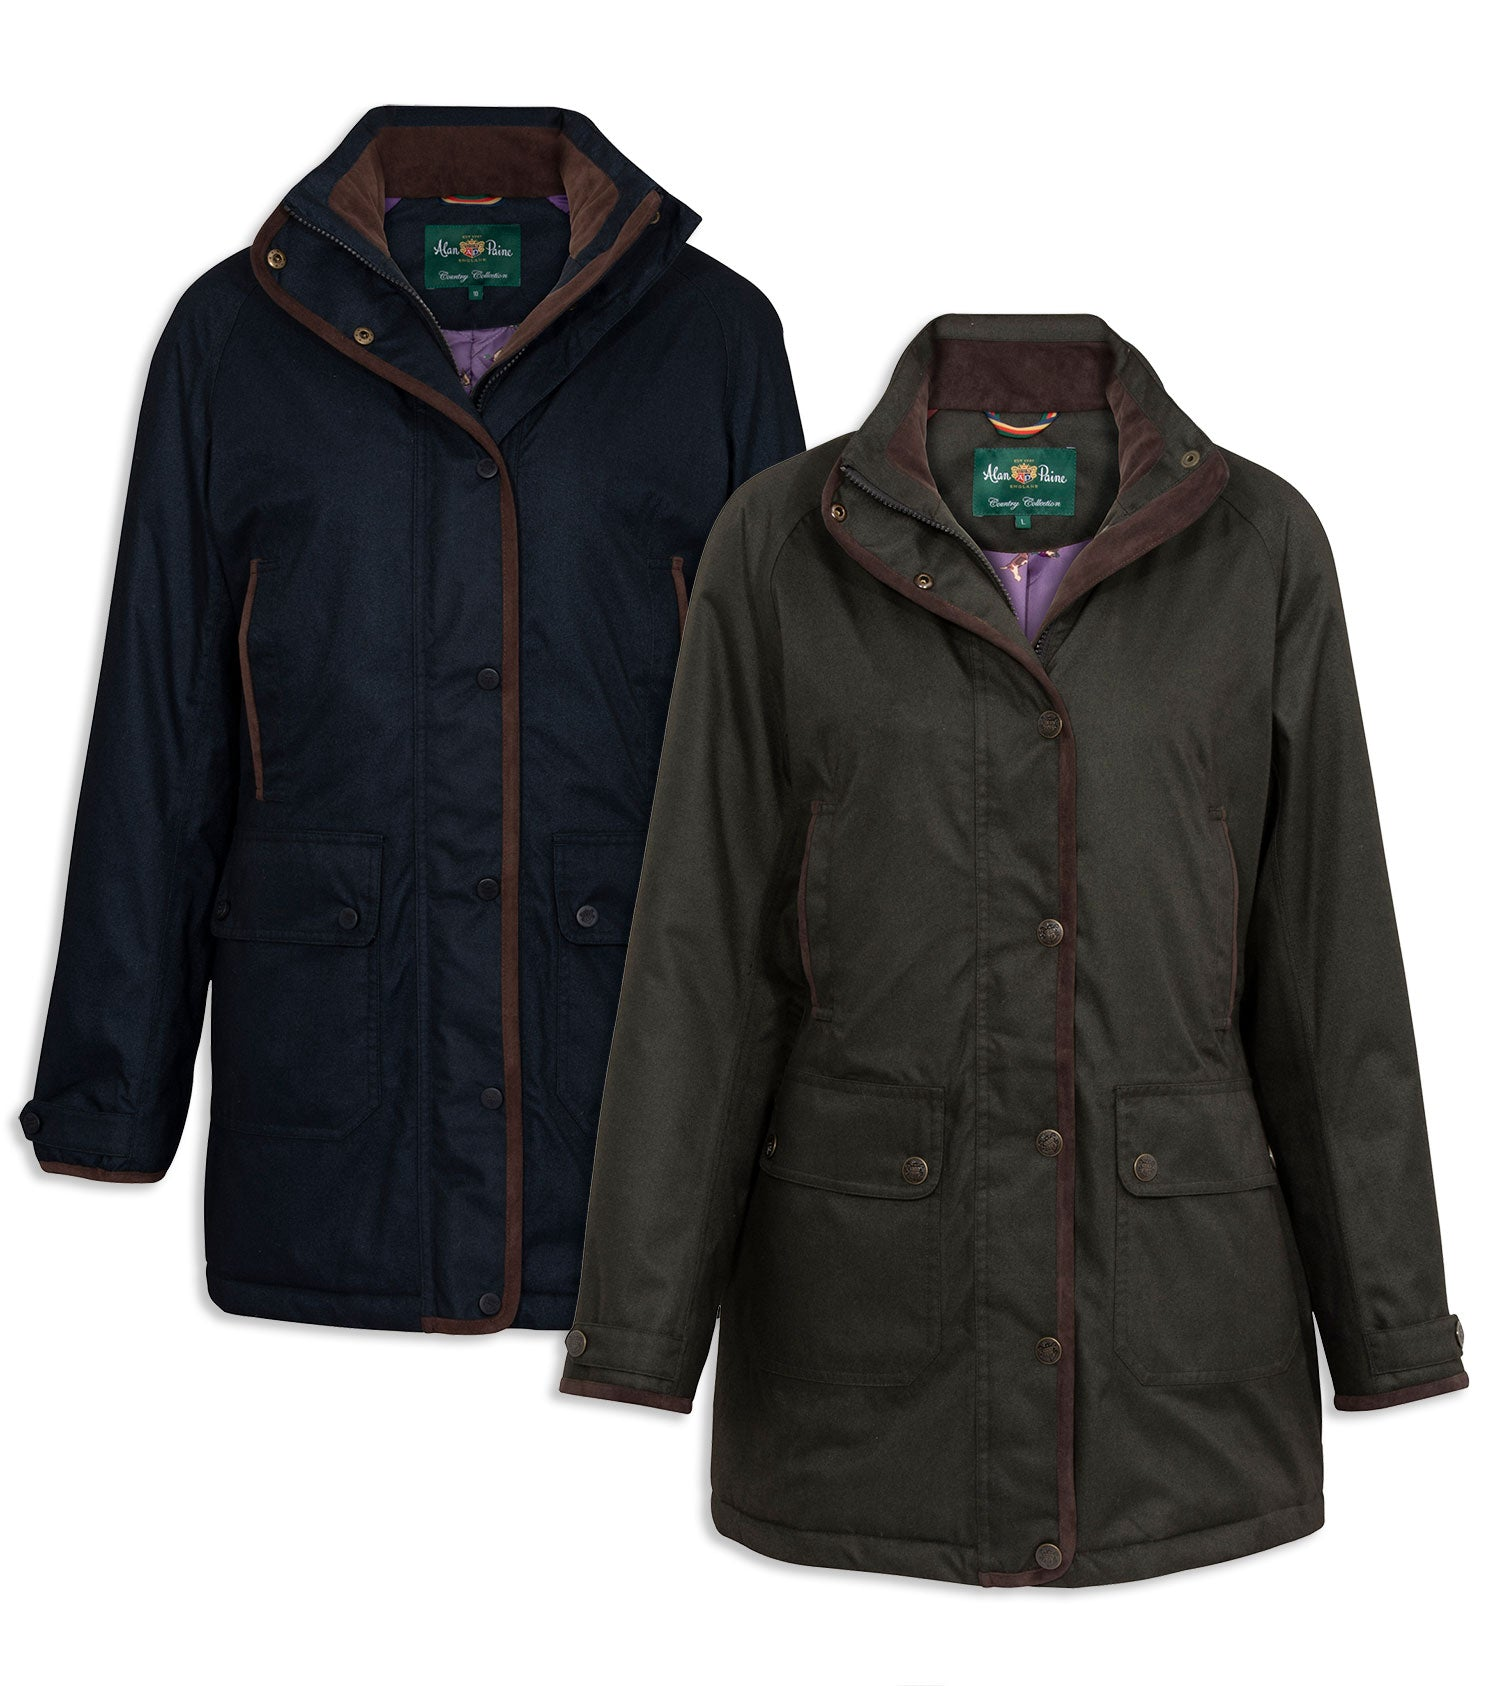 Alan Paine Fernley Ladies Weekend Coat | Woodland Green, Navy Blue